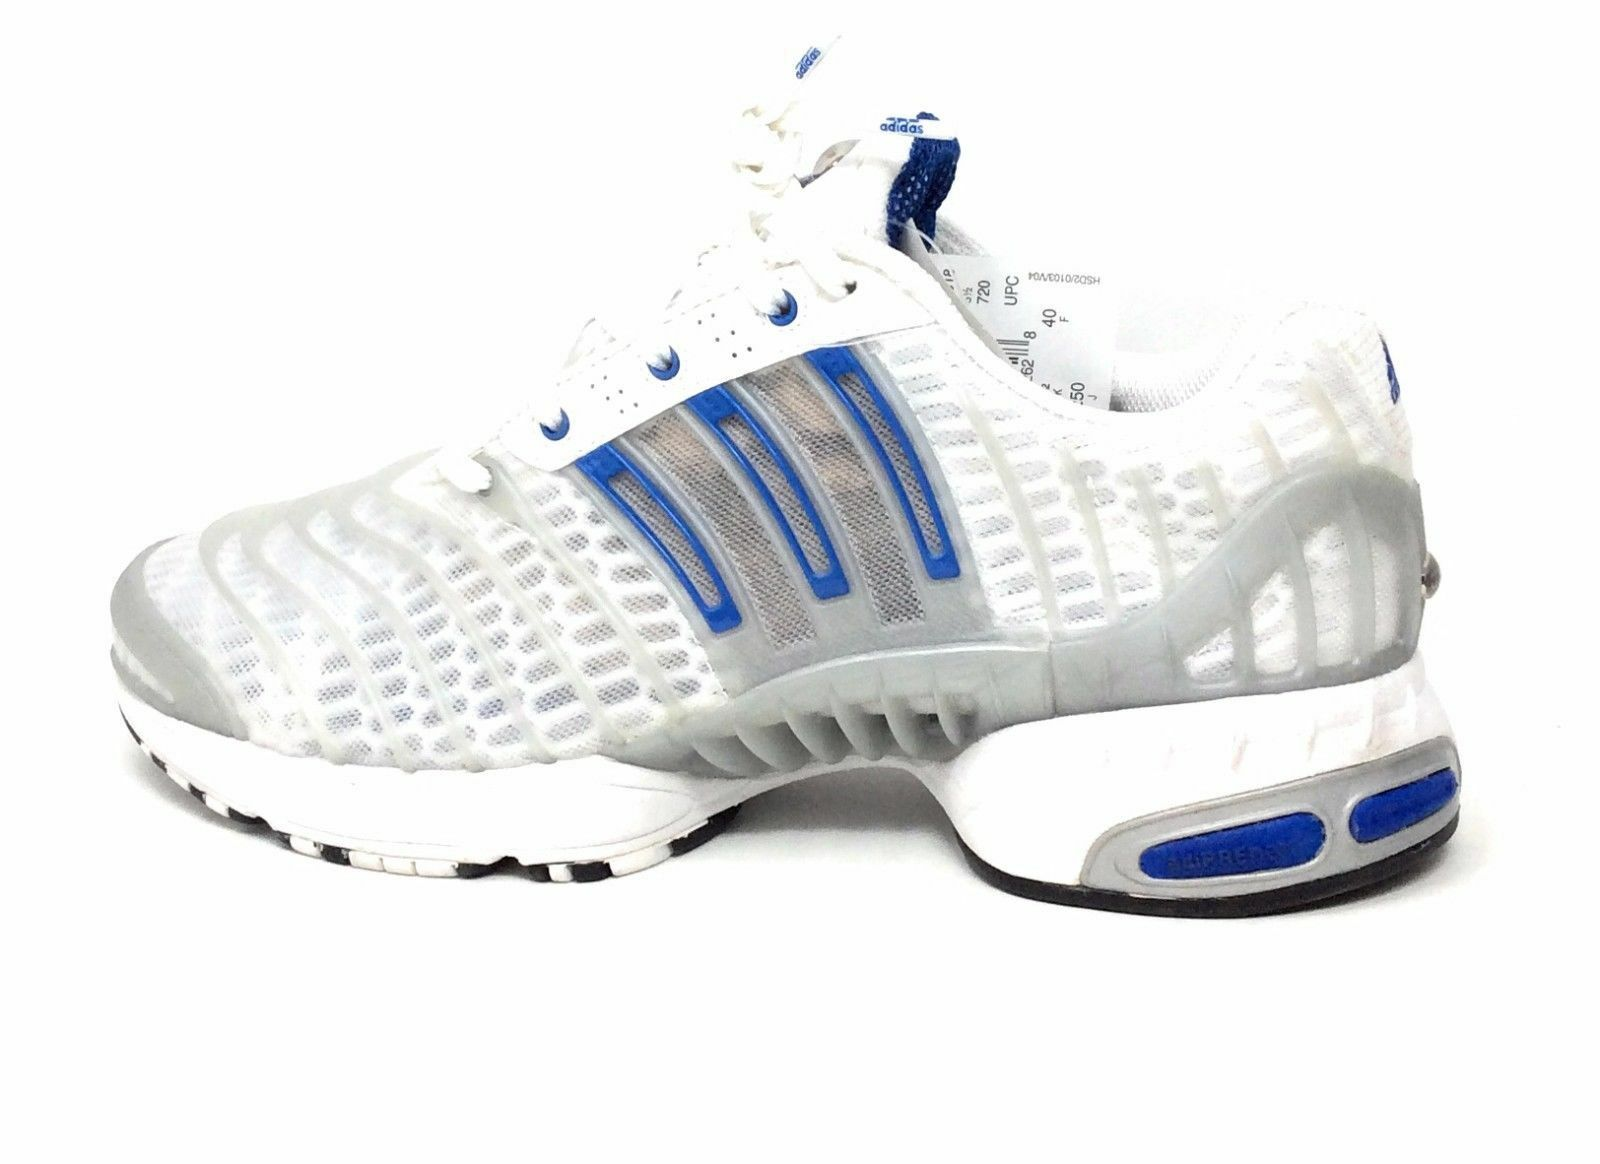 Adidas Mens Climacool Revolution Running Shoe White Size 7 US Rare Deadstock